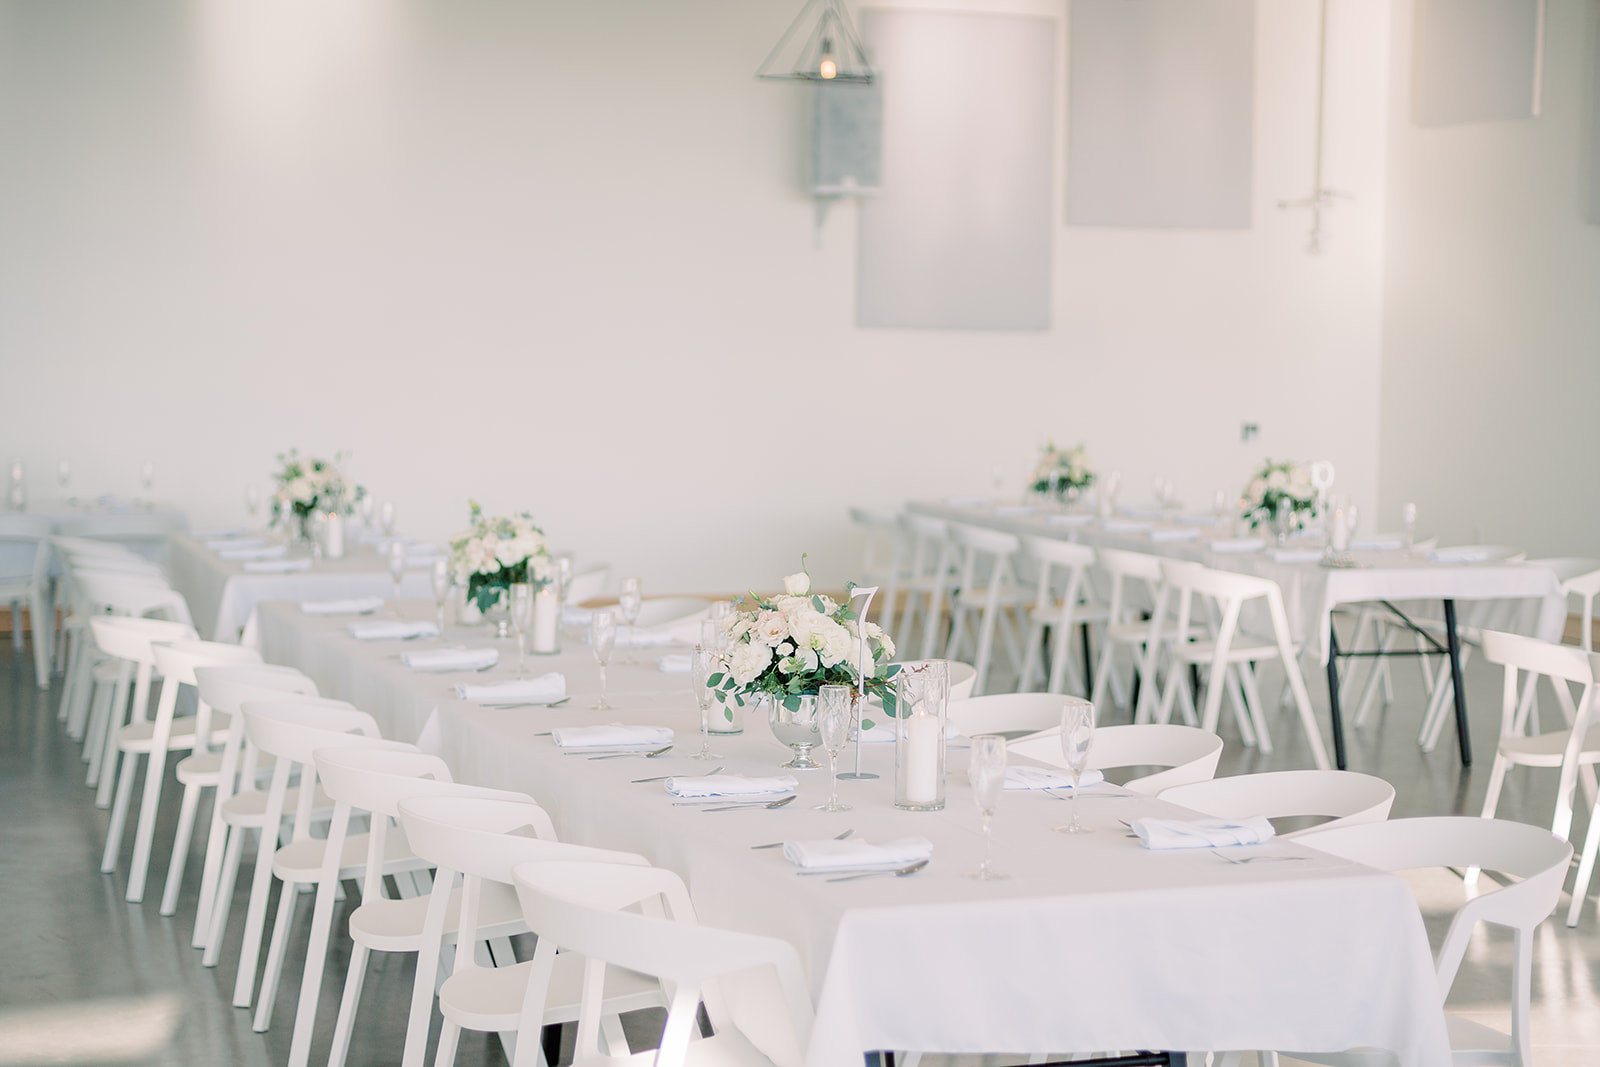 The Lane tables with linens